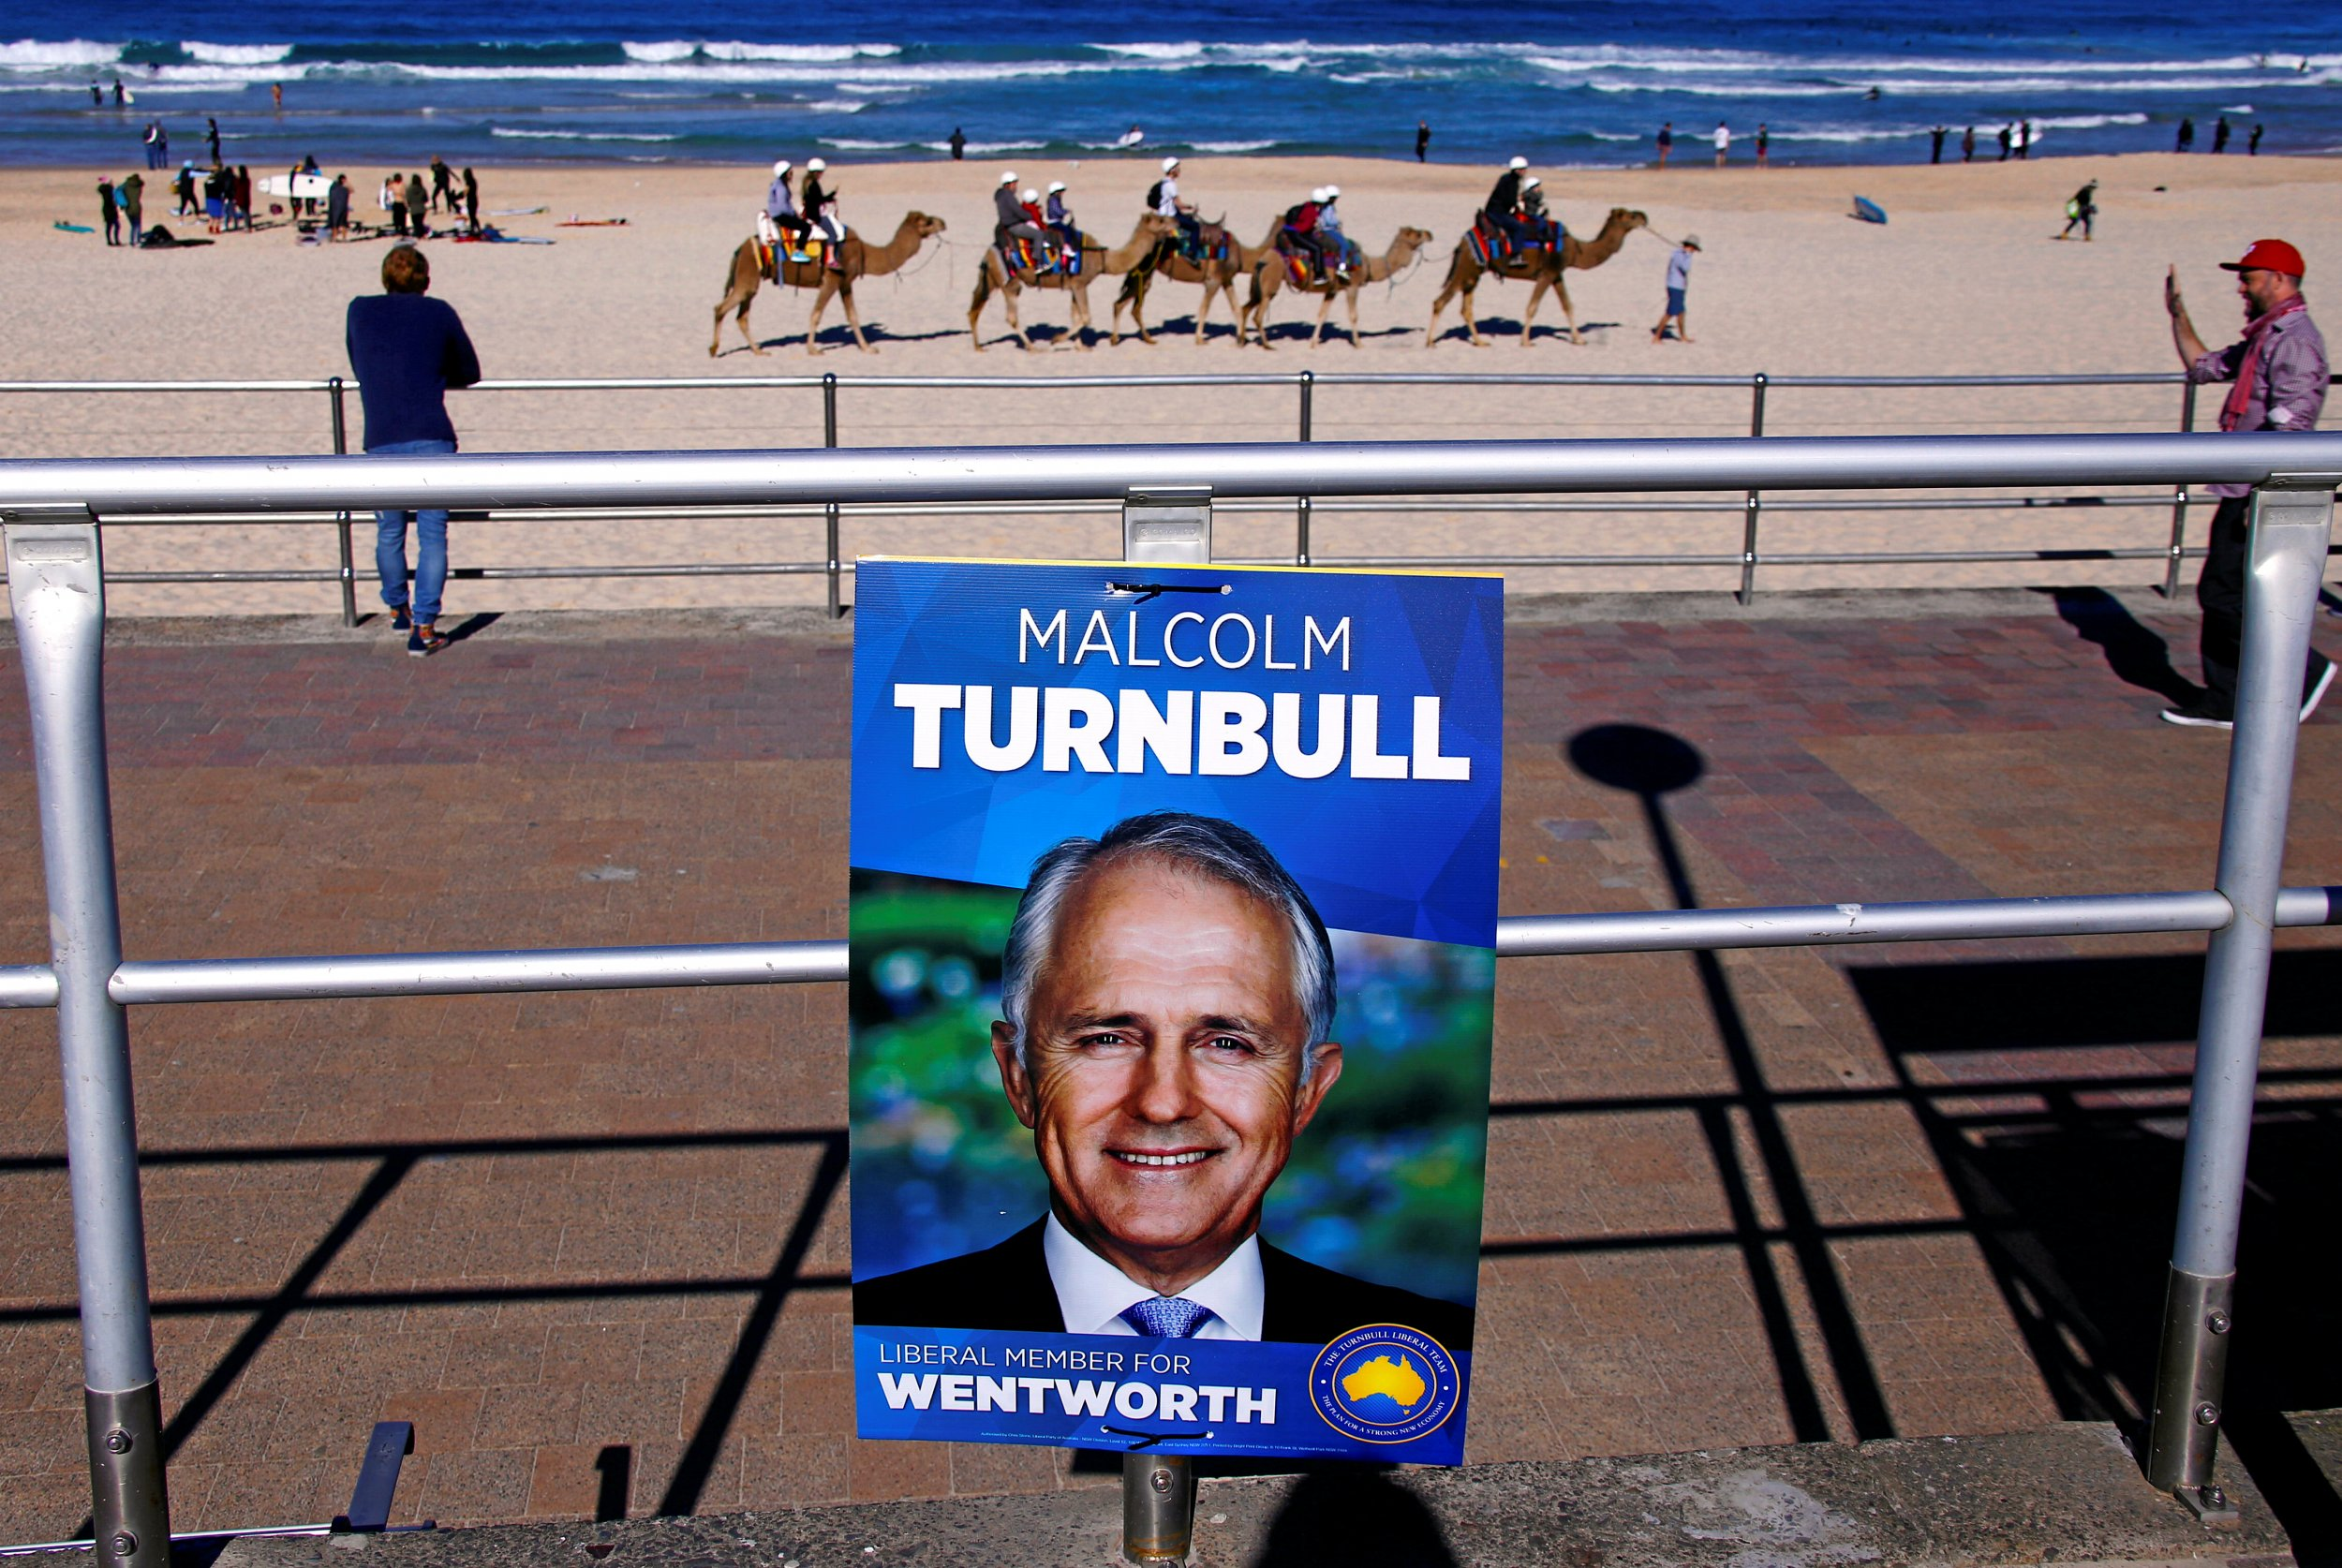 Malcolm Turnbull poster